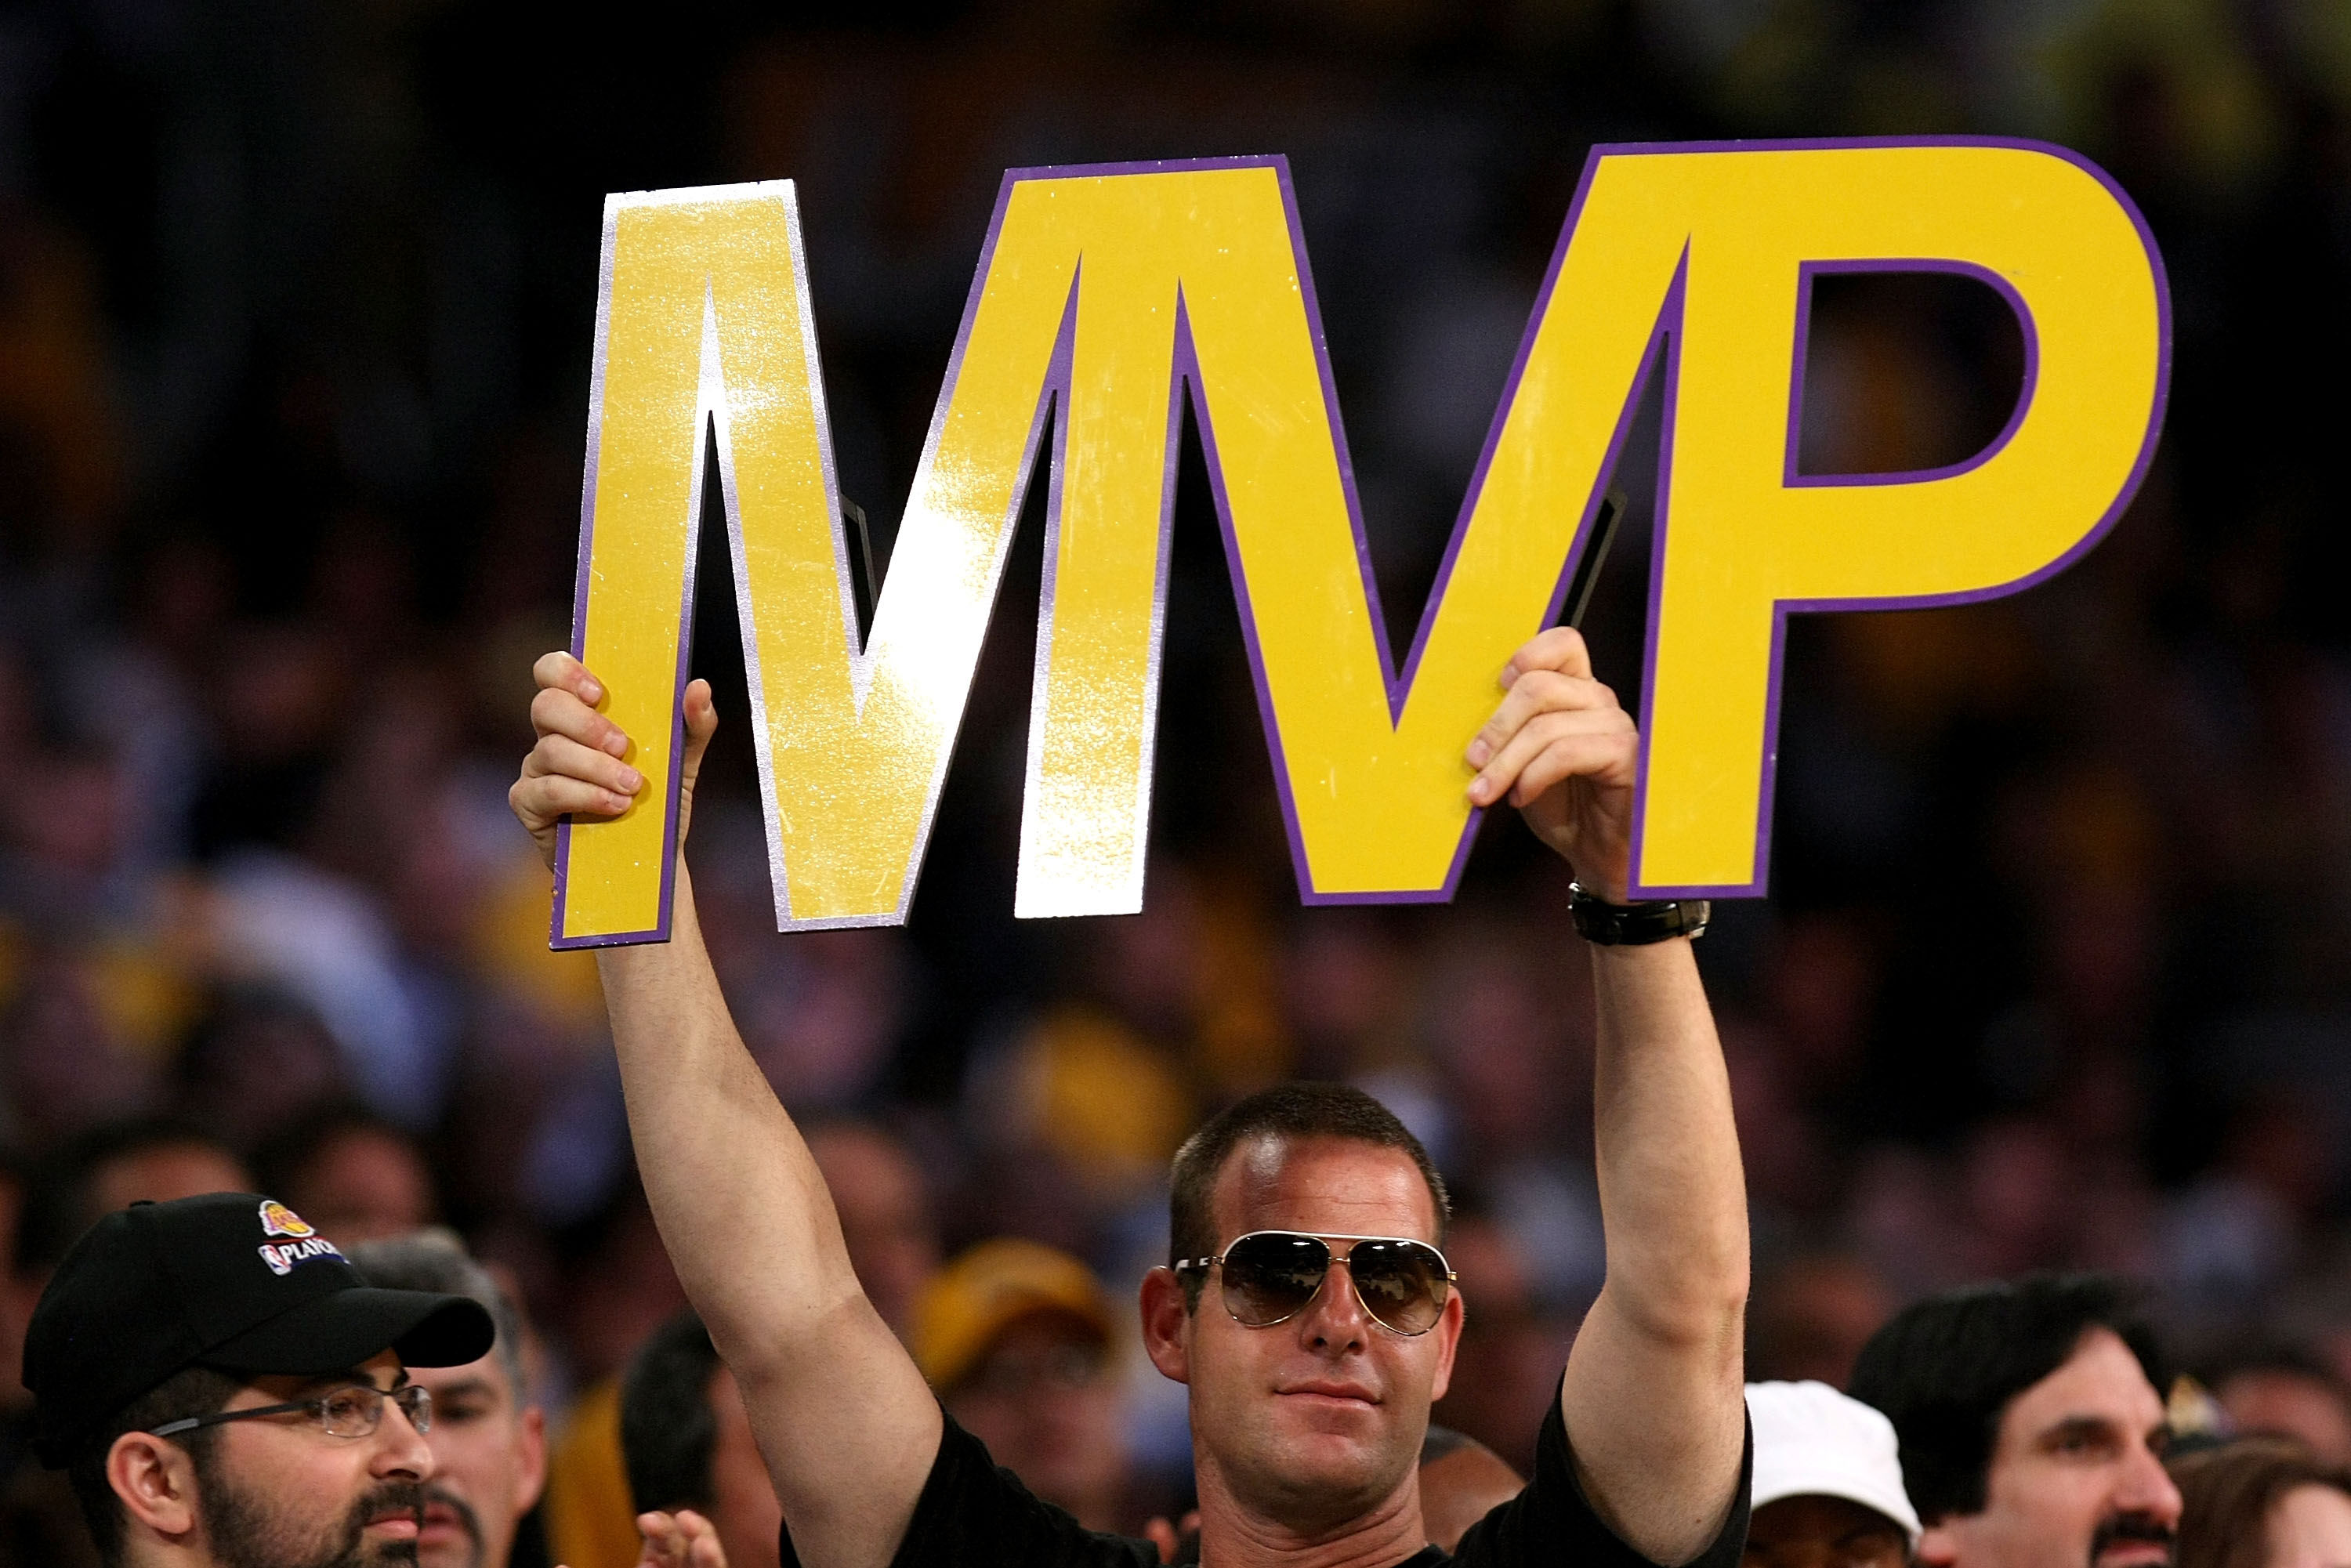 LOS ANGELES, CA - MAY 07:  A fan holds up an MVP sign as Kobe Bryant #24 of the Los Angeles Lakers is awarded the MVP trophy during the Lakers' win over the Utah Jazz in Game Two of the Western Conference Semifinals during the 2008 NBA Playoffs on May 7,